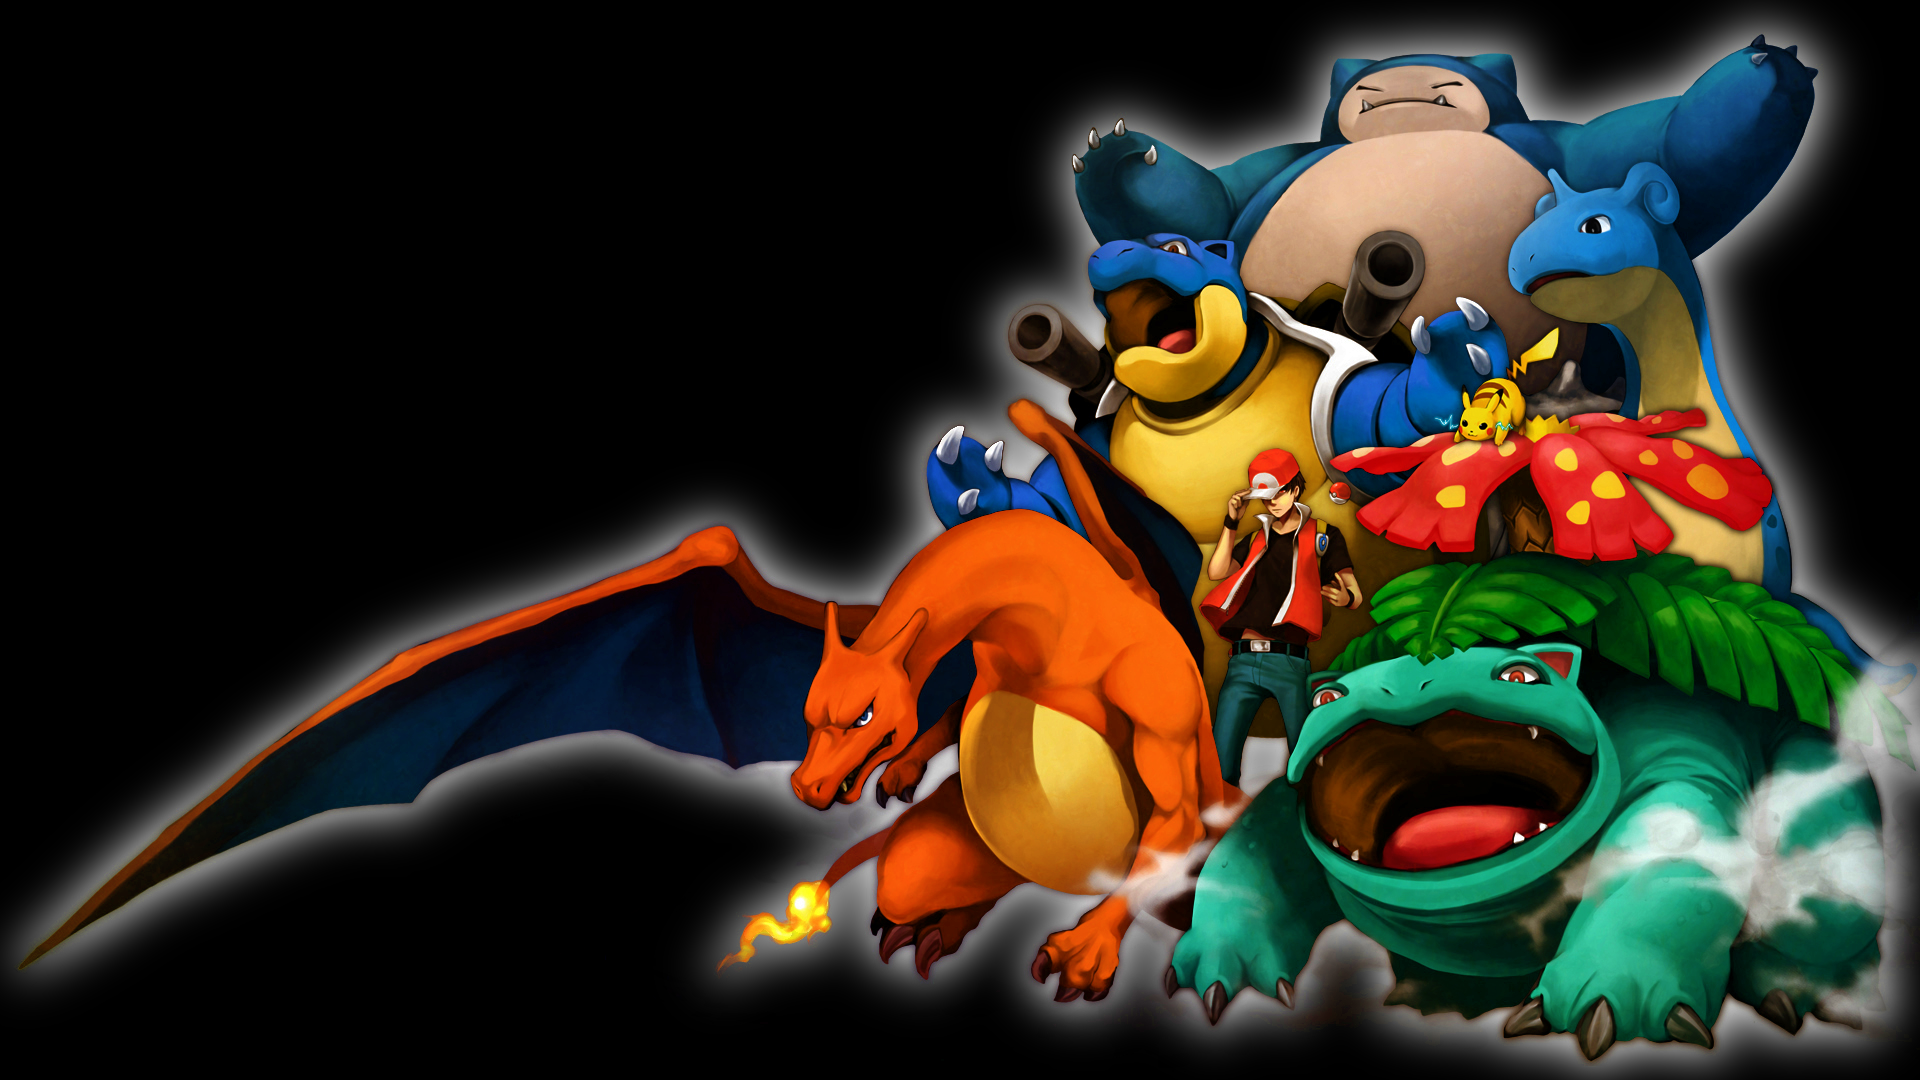 pokemon hd wallpapers iphone Desktop Backgrounds for HD 1920x1080